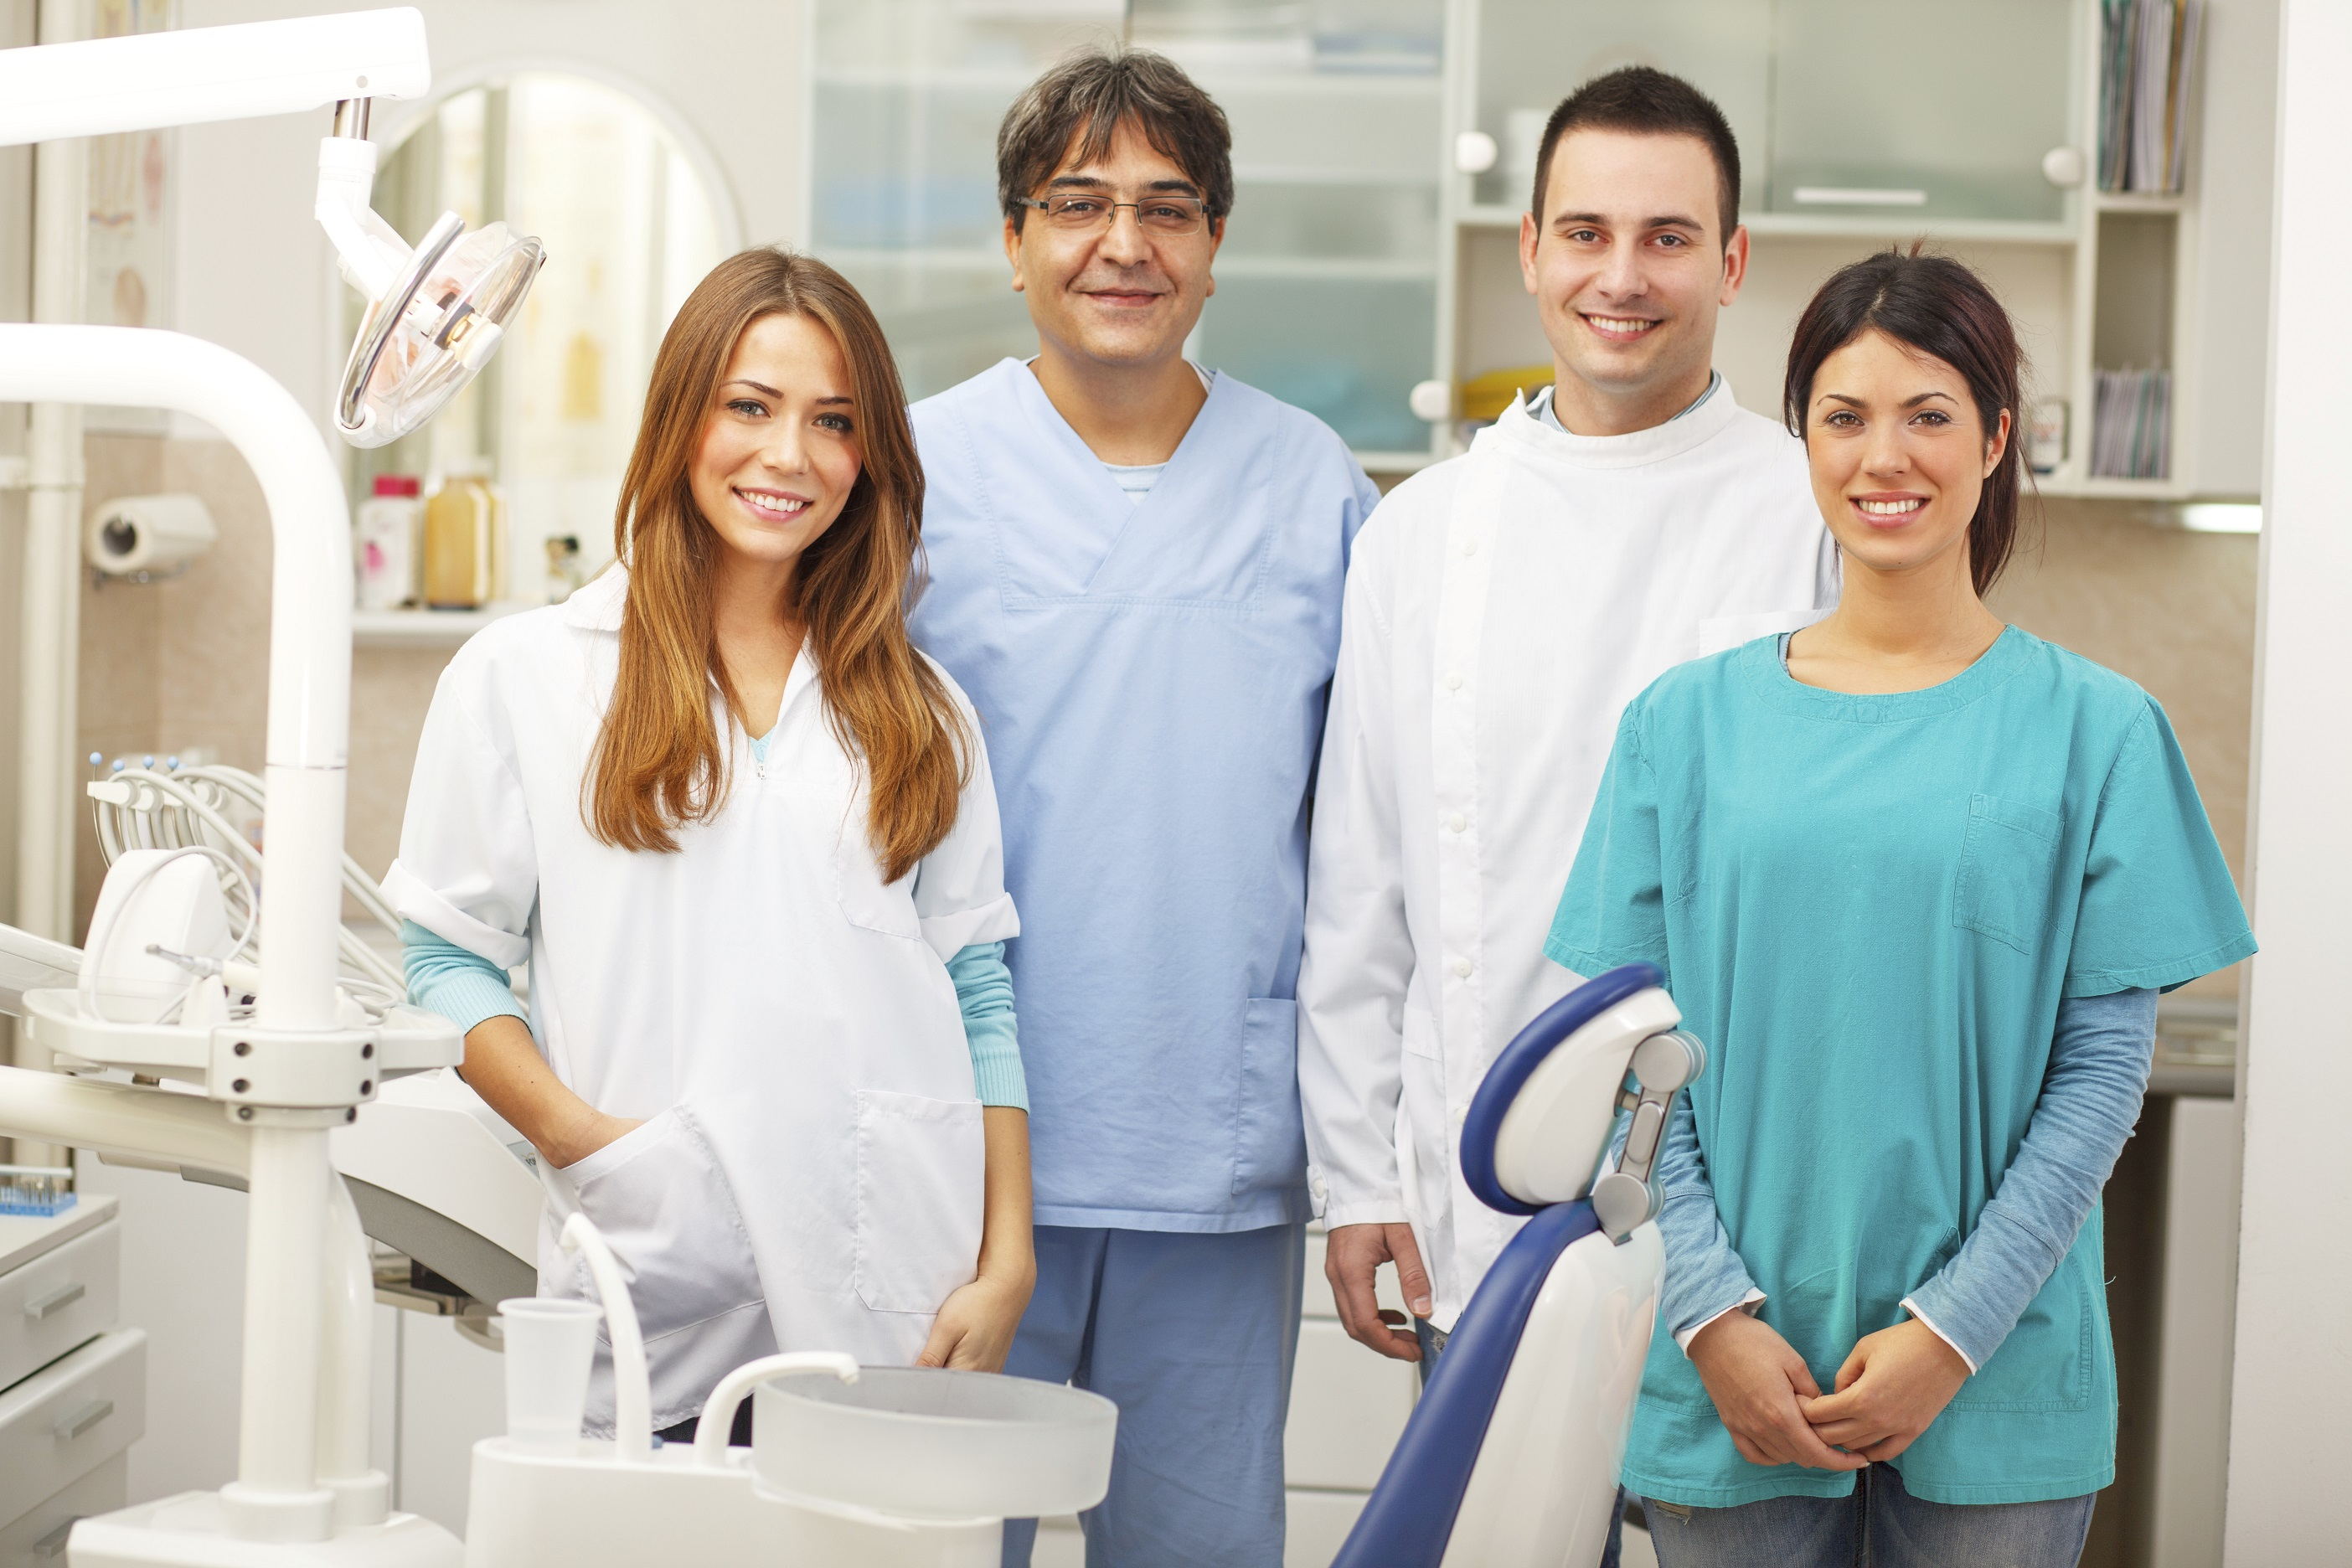 How Much Do Dentistry Professionals Make?